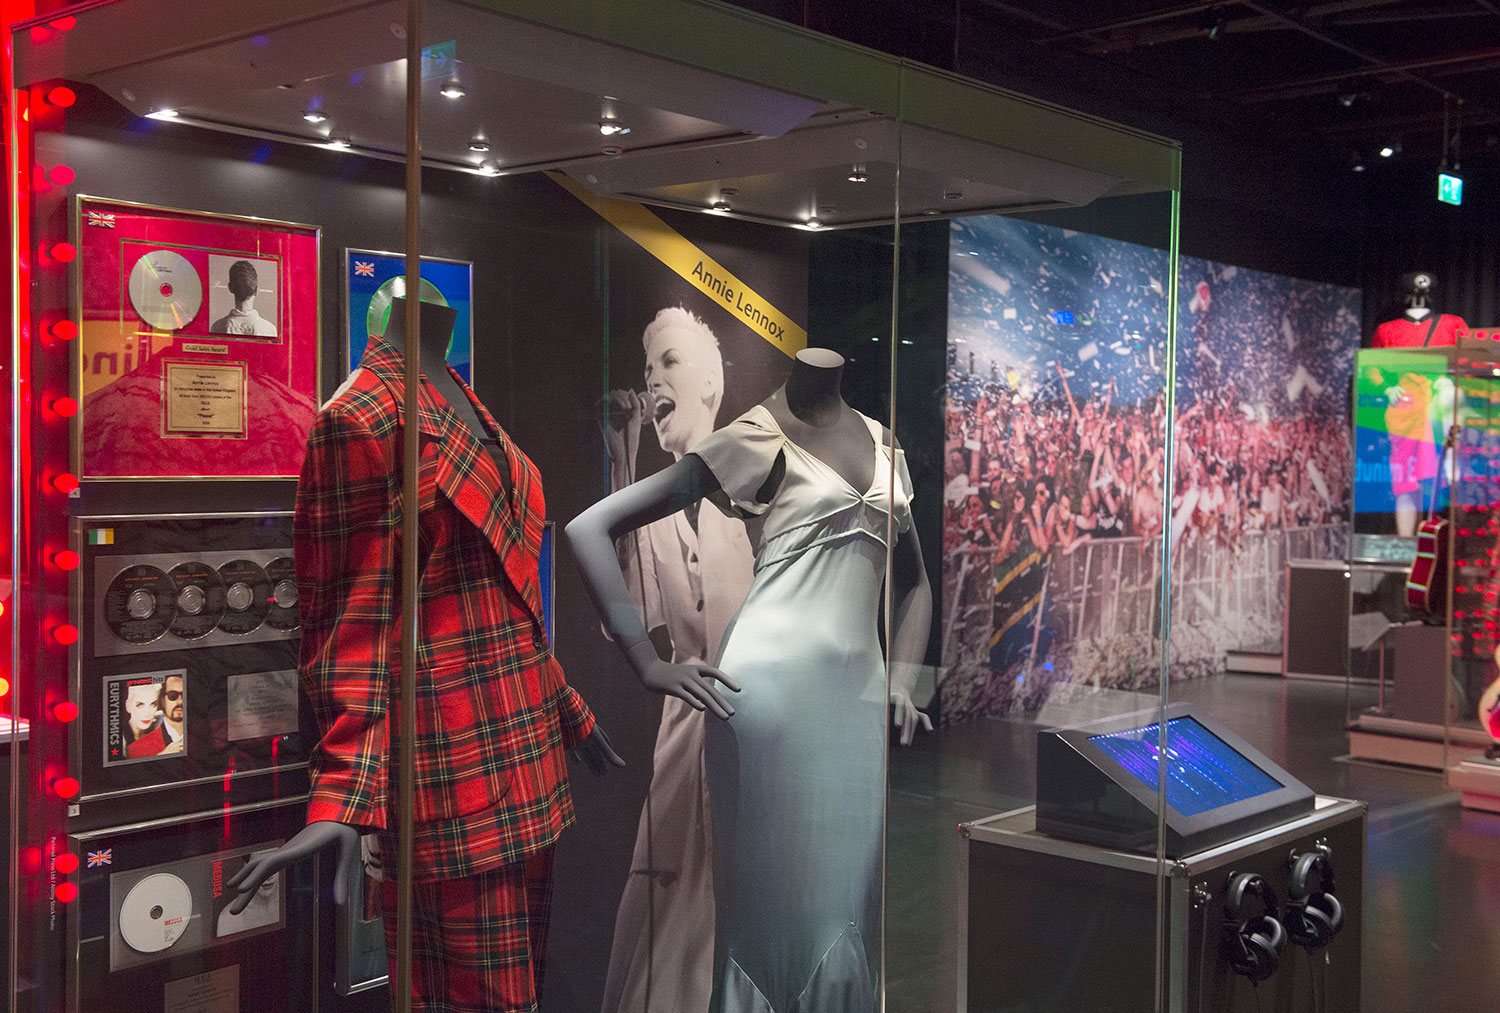 Objects on loan from Annie Lennox in the 'Going Global' area of the Rip It Up exhibition.